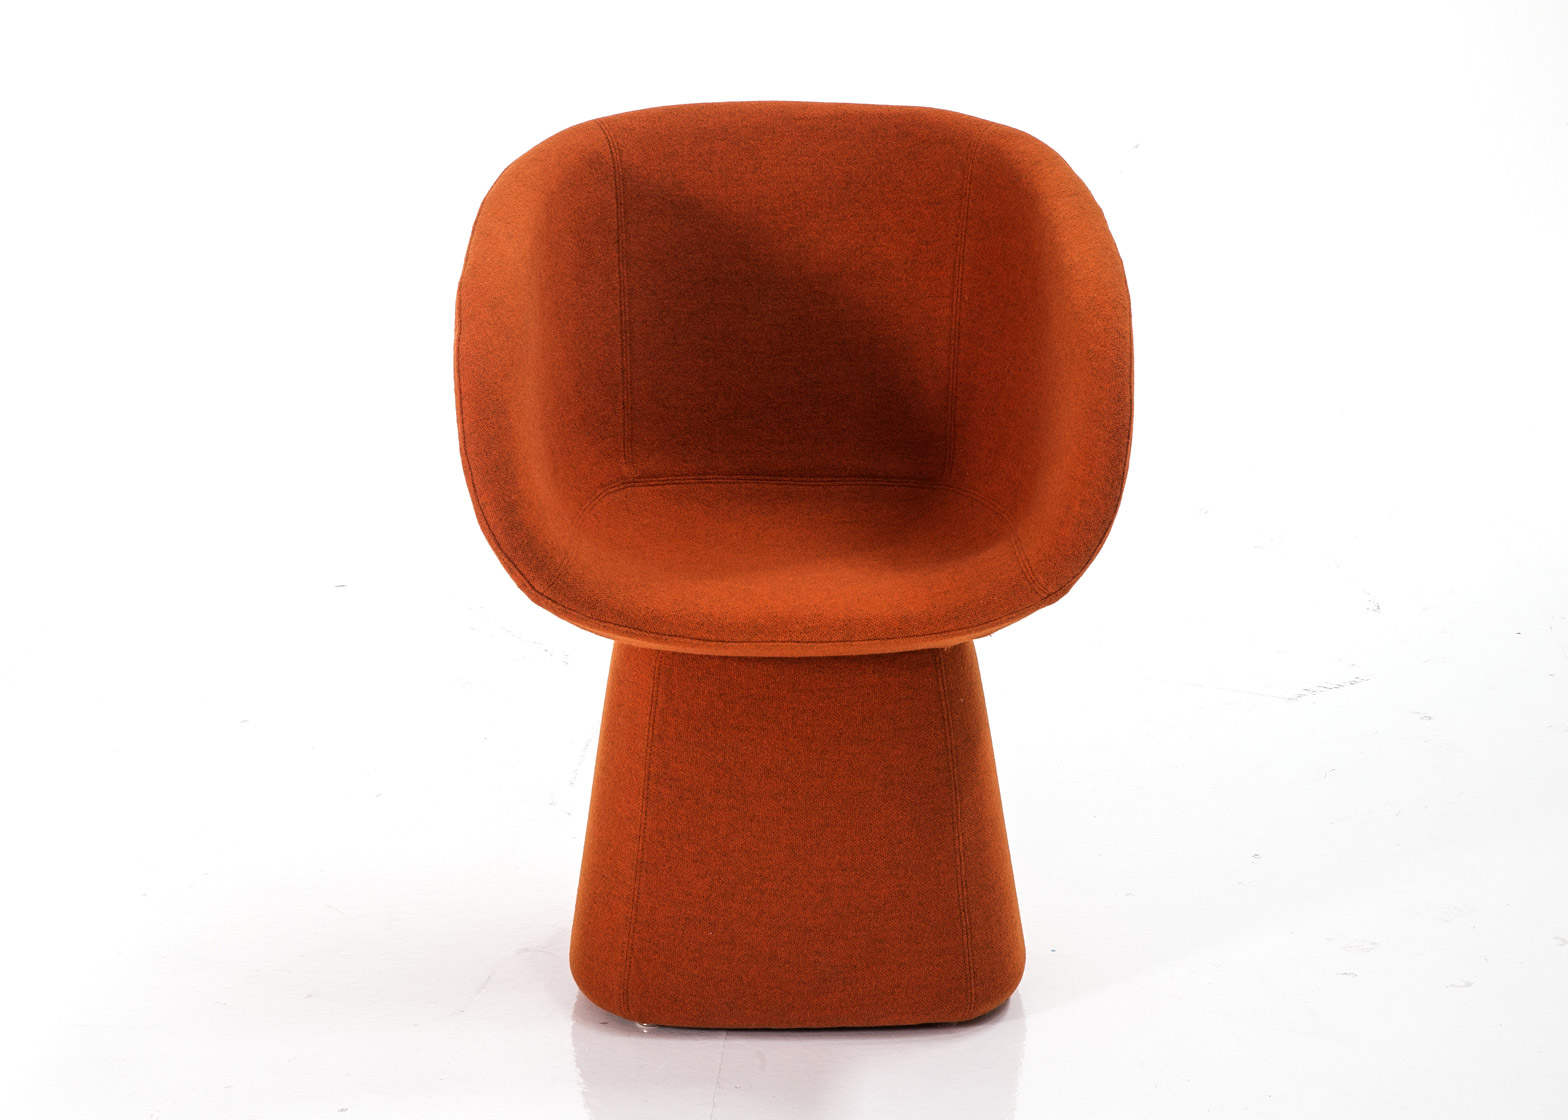 armada-nipa-doshi-jonathan-levien-seating-furniture-moroso-milan-design-week-2016_dezeen_1568_0.jpg